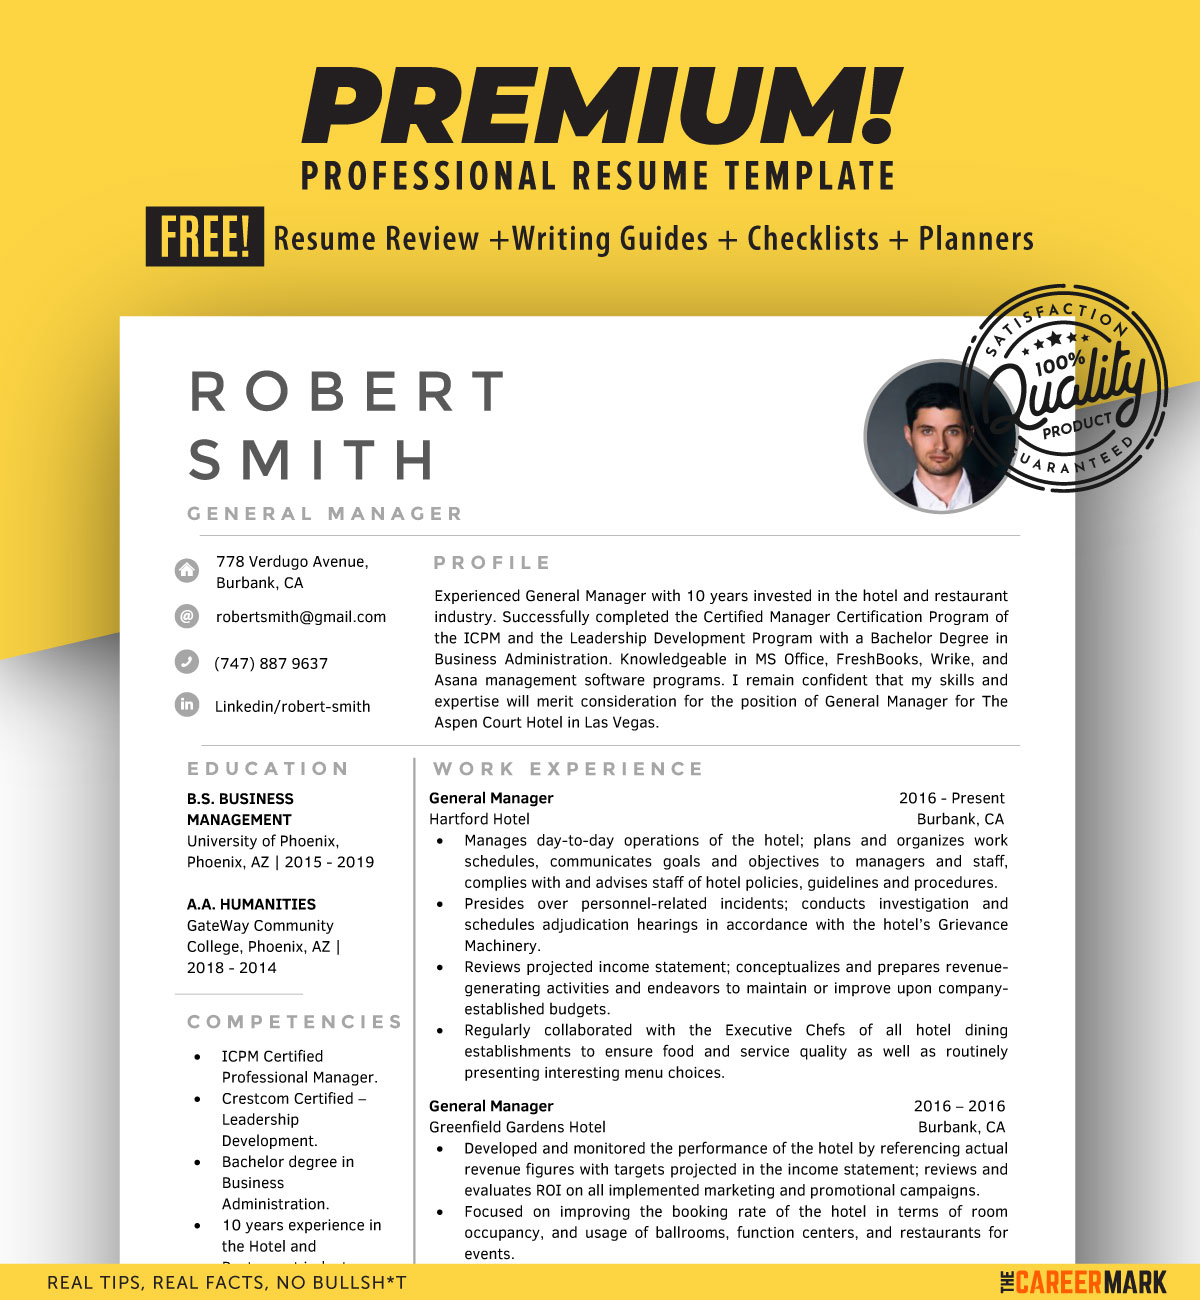 General Manager Modern Resume Template for Word